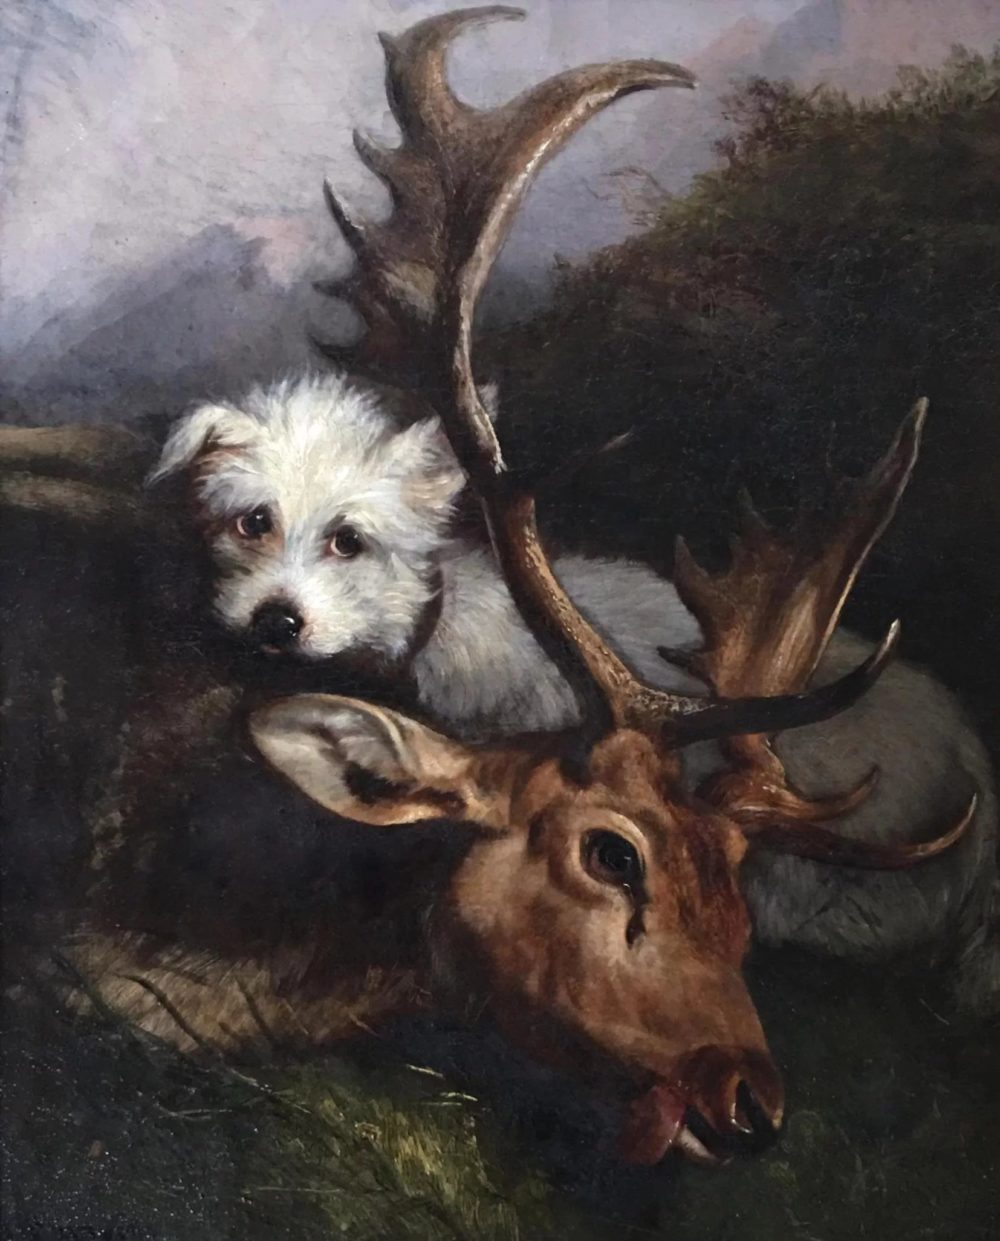 Antique-oil-canvas-hunting-scene-dog-full-4-2048x2-951